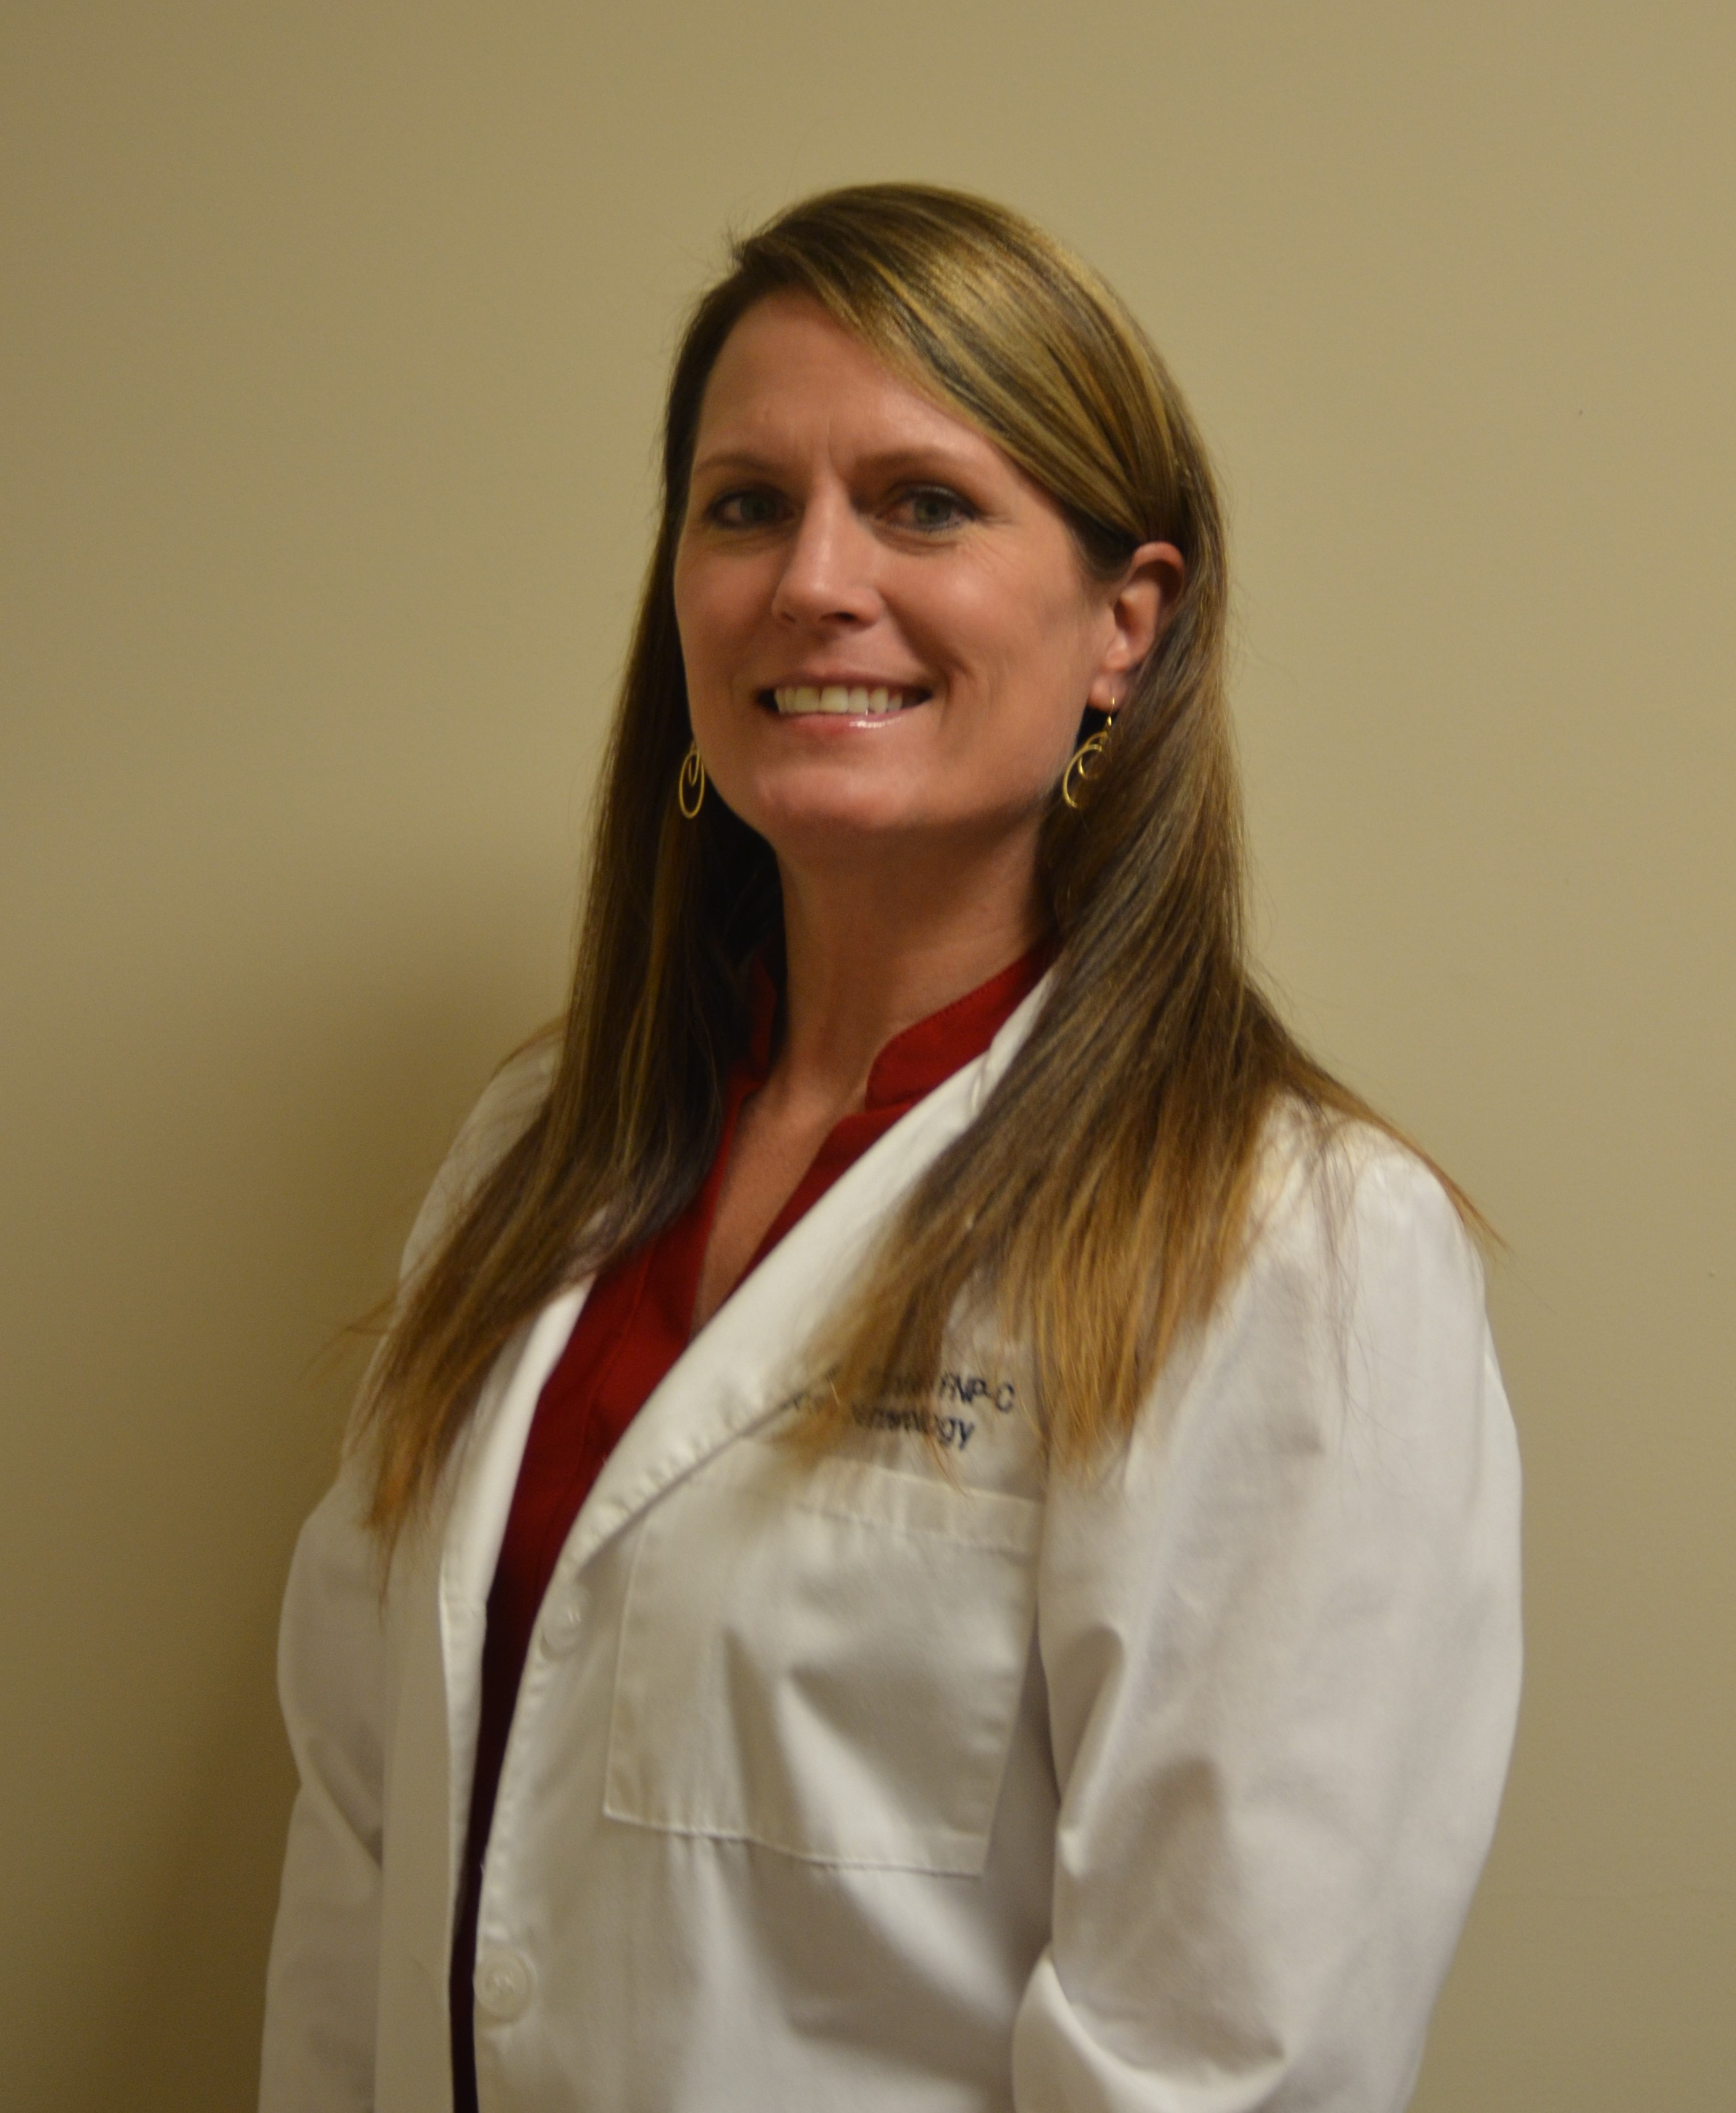 Constance A. Bright - Family Nurse Practitioner